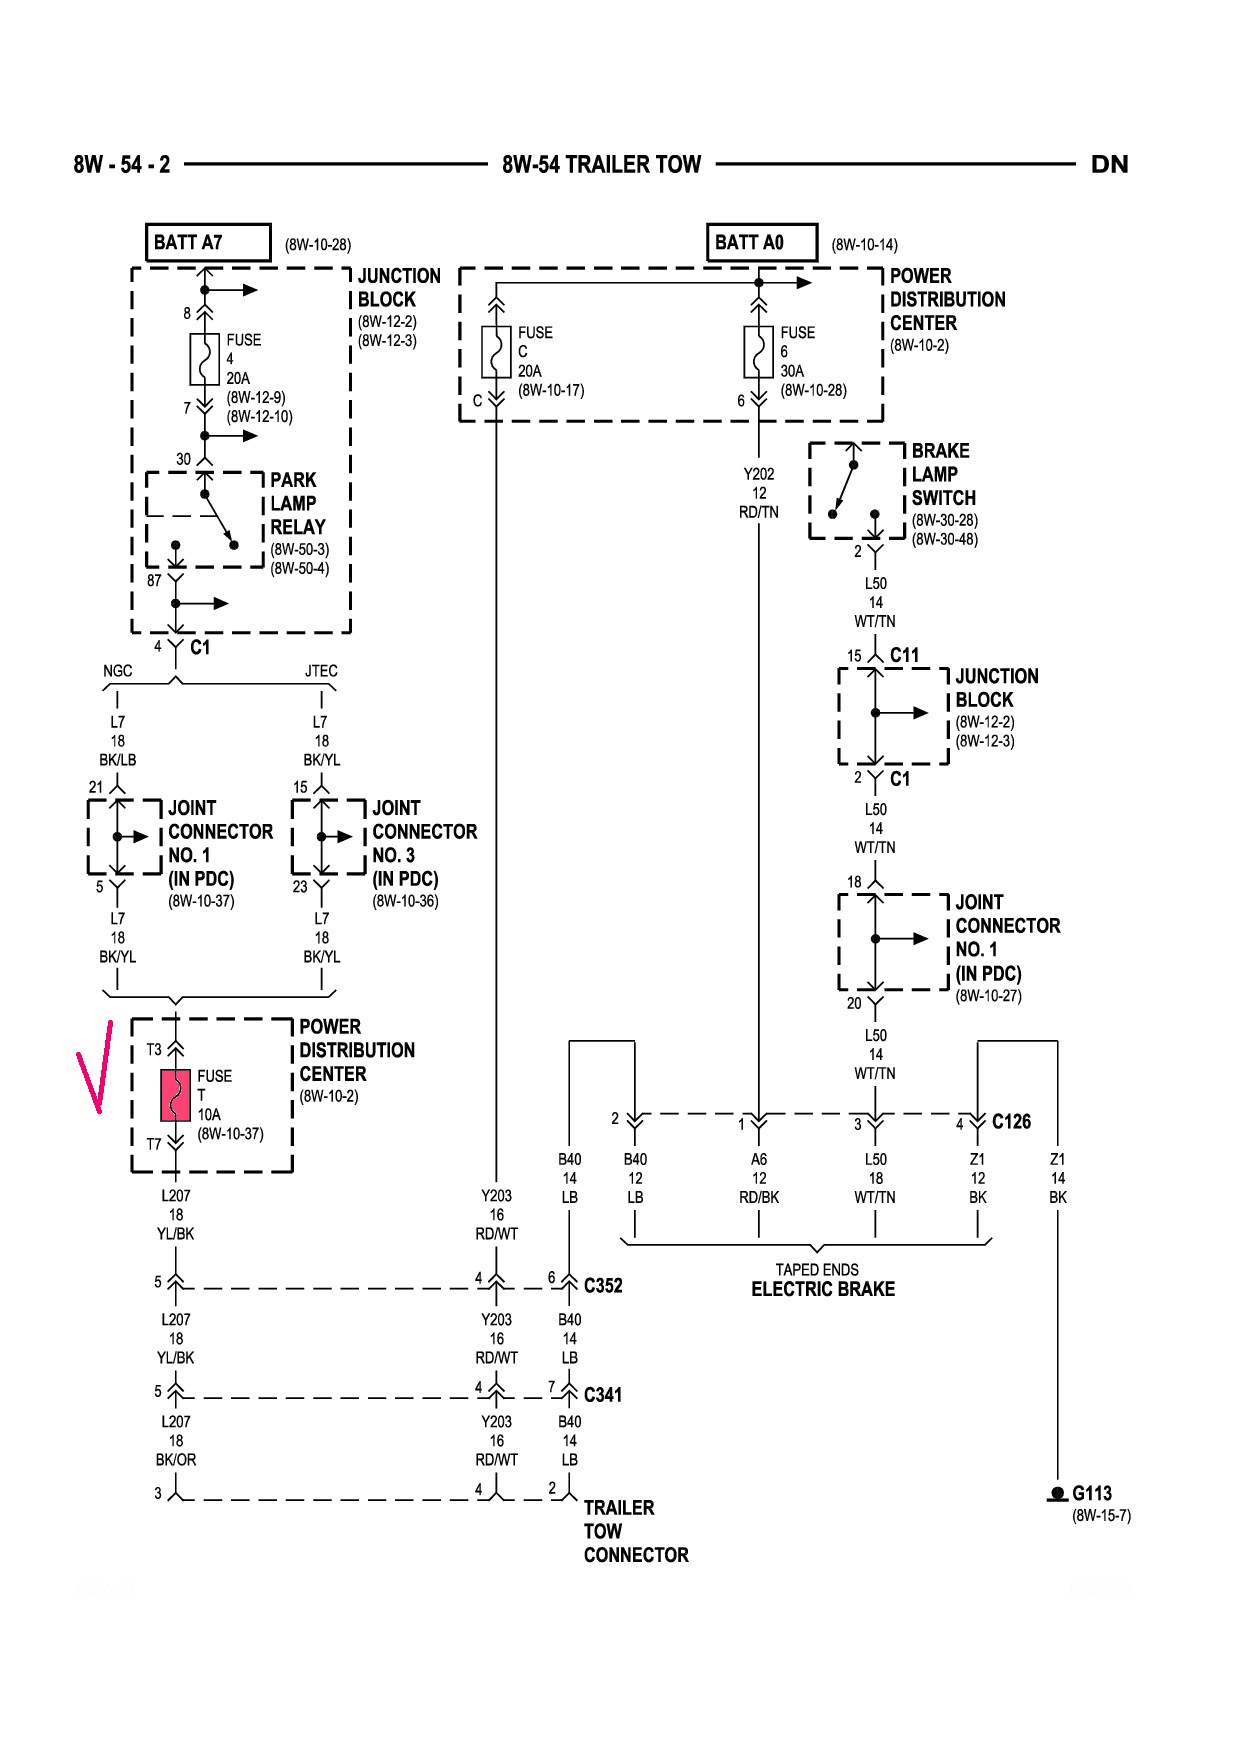 2005 Dodge Durango Wire and Fuse Diagram 692 2000 Dodge Durango Trailer Wiring Of 2005 Dodge Durango Wire and Fuse Diagram